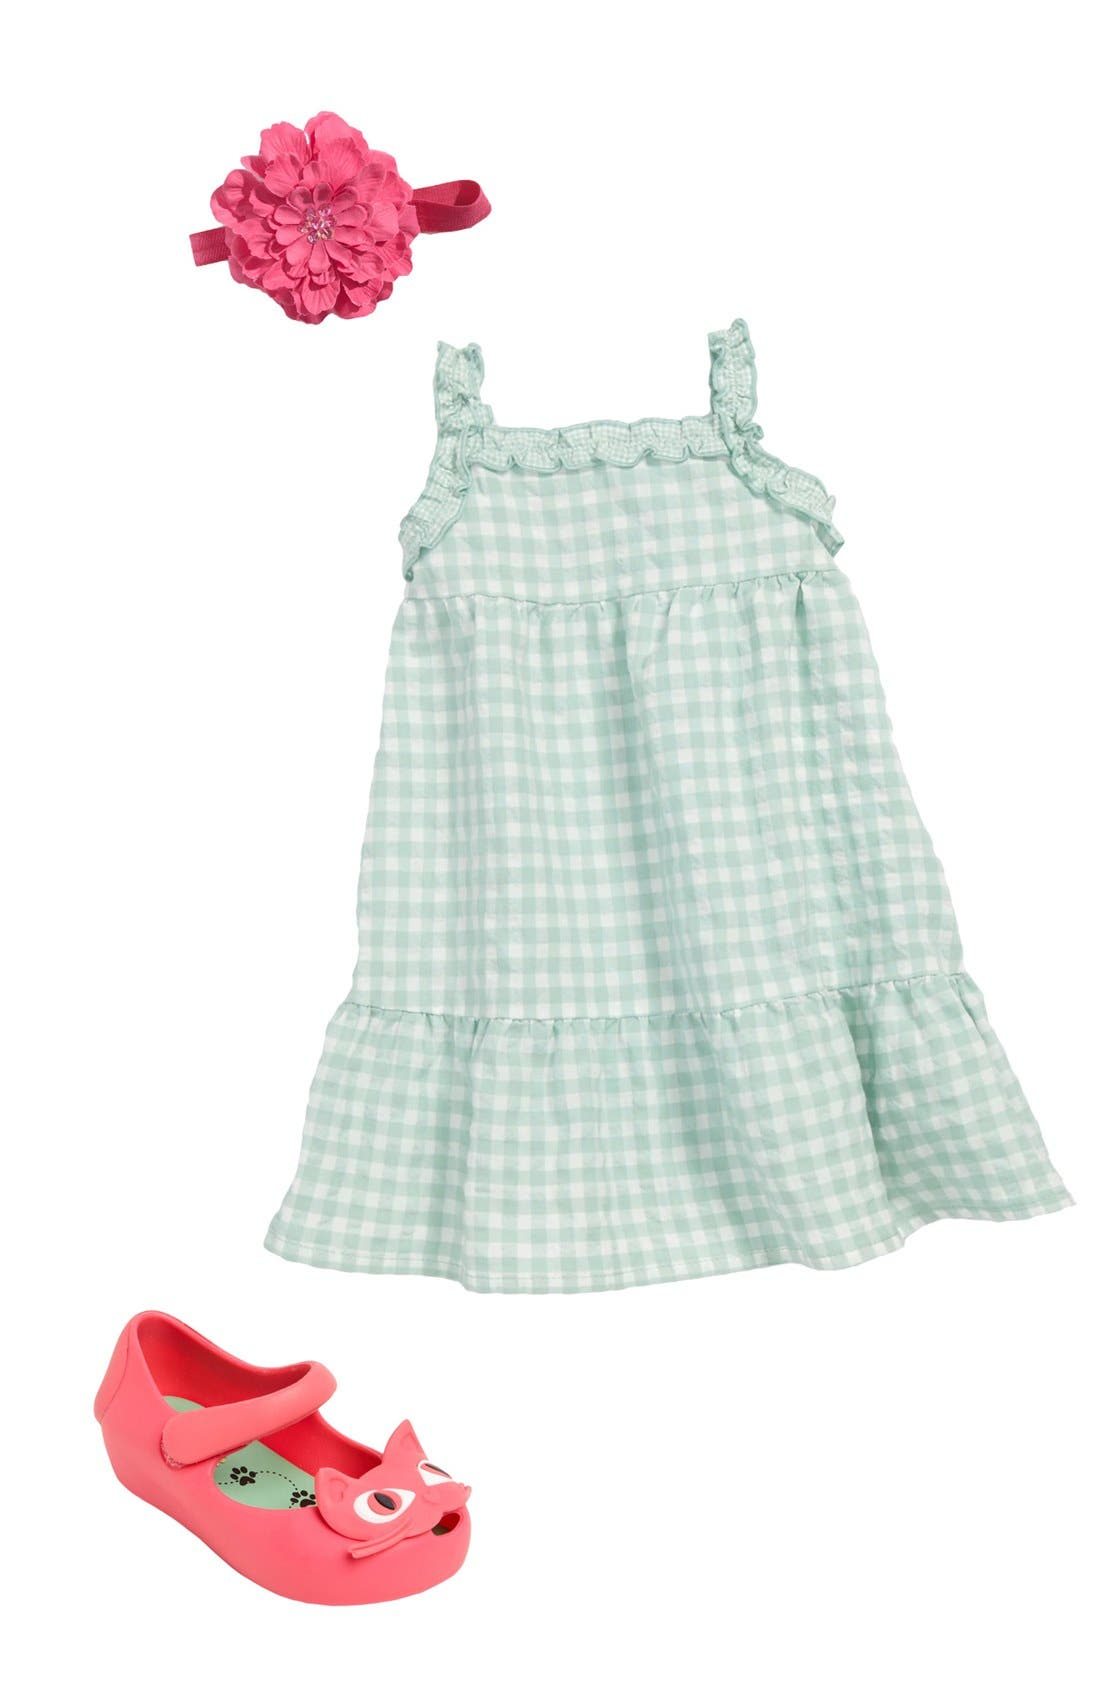 Alternate Image 1 Selected - United Colors of Benetton Kids Dress, PLH Bows & Laces Headband & Mini Melissa Slip-On (Infant)